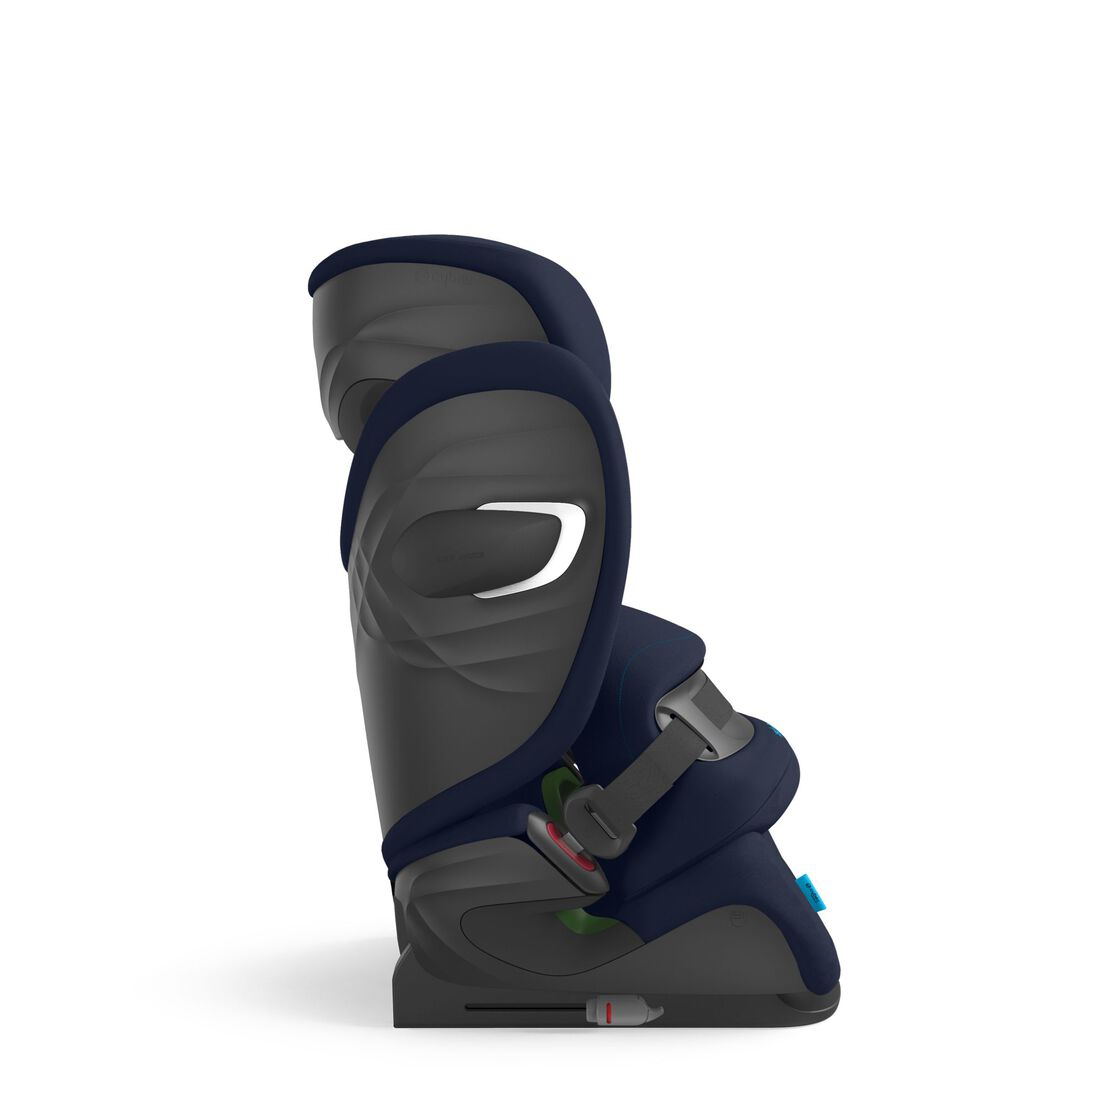 CYBEX Pallas G i-Size - Navy Blue in Navy Blue large image number 4